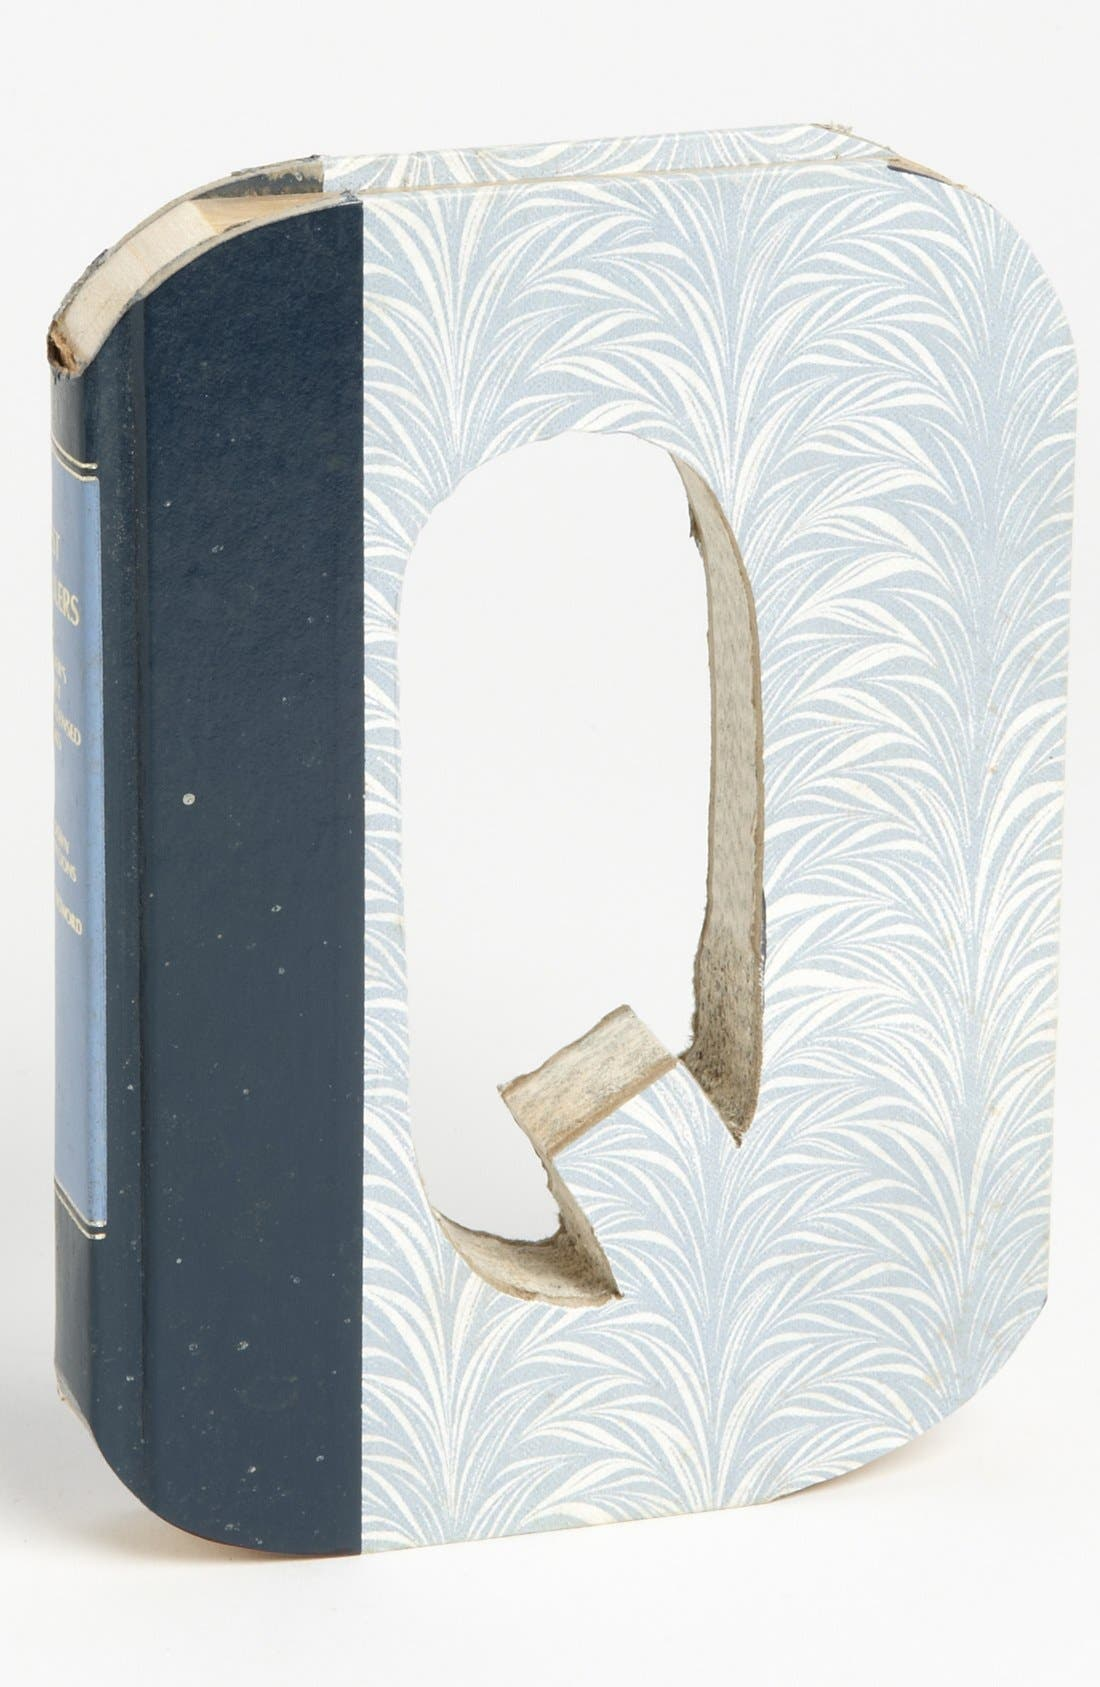 Main Image - Second Nature by Hand 'One of a Kind Letter' Hand-Carved Recycled Book Shelf Art